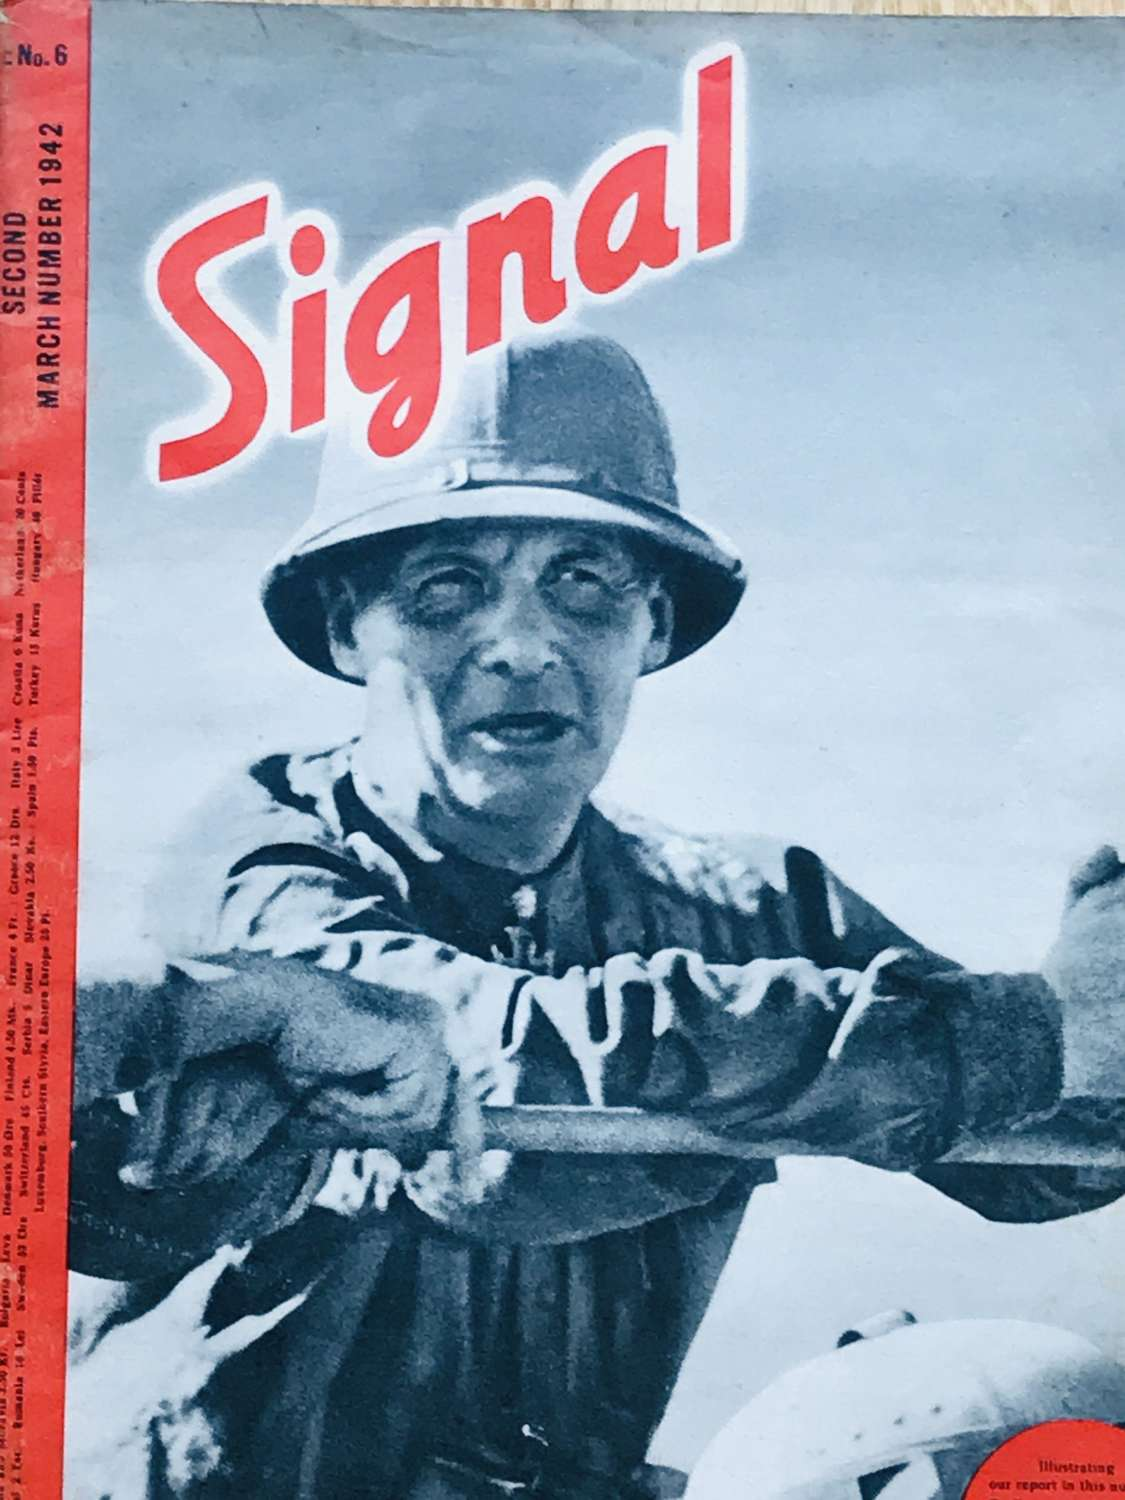 A copy of the signal magazine in English